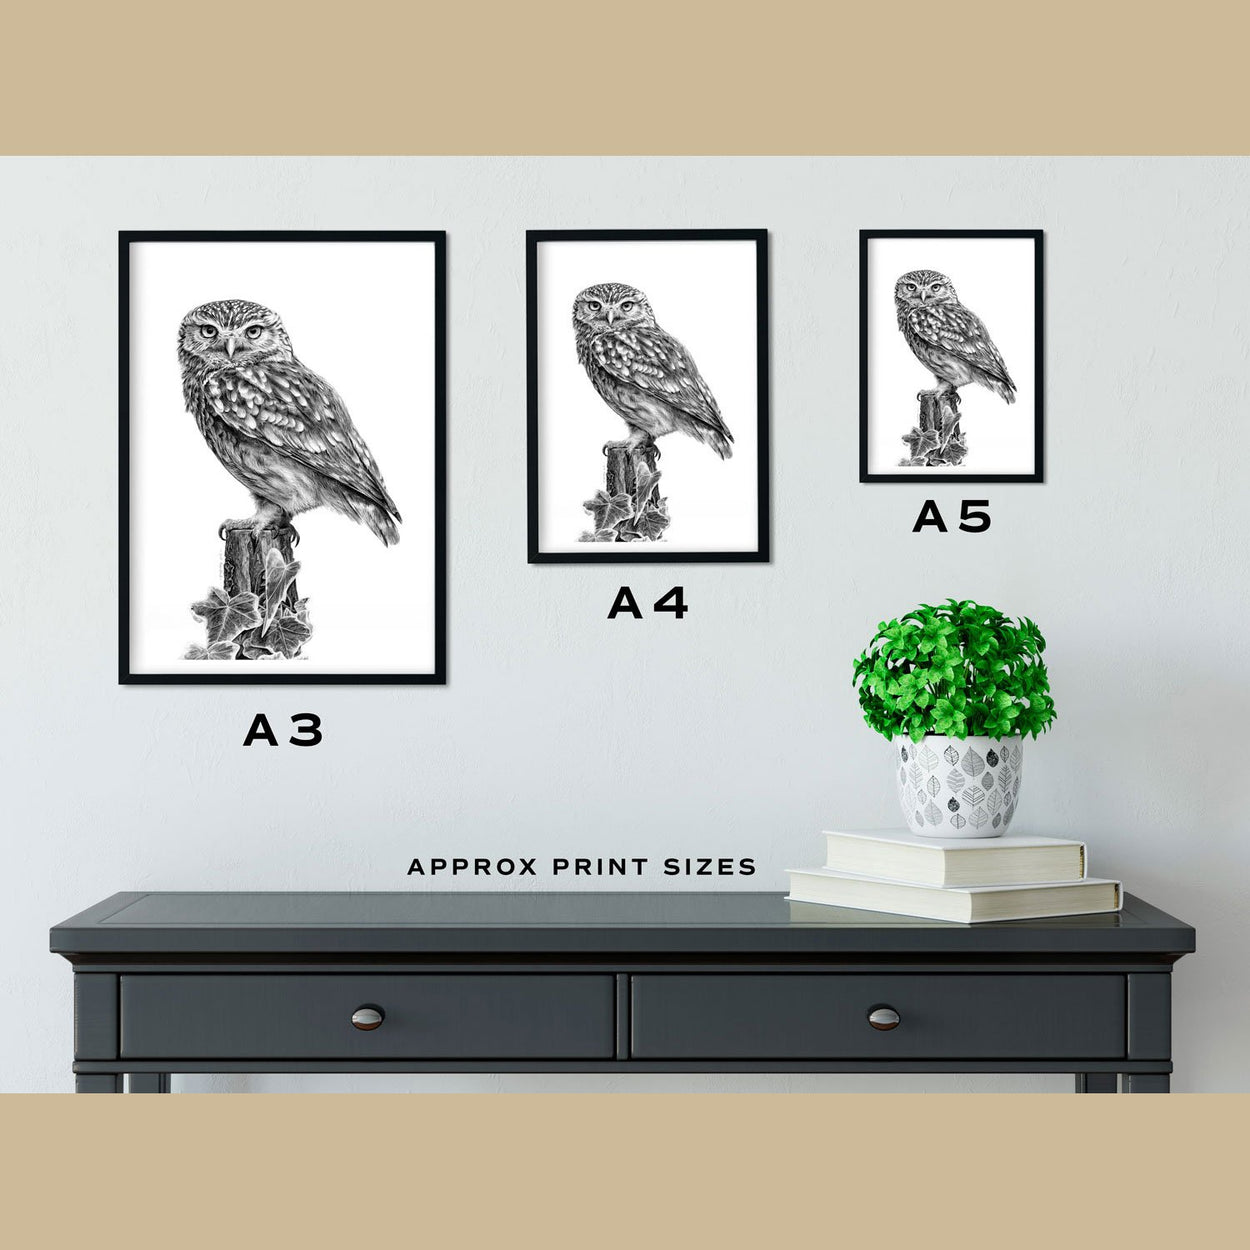 Little Owl Print Size Comparison - The Thriving Wild